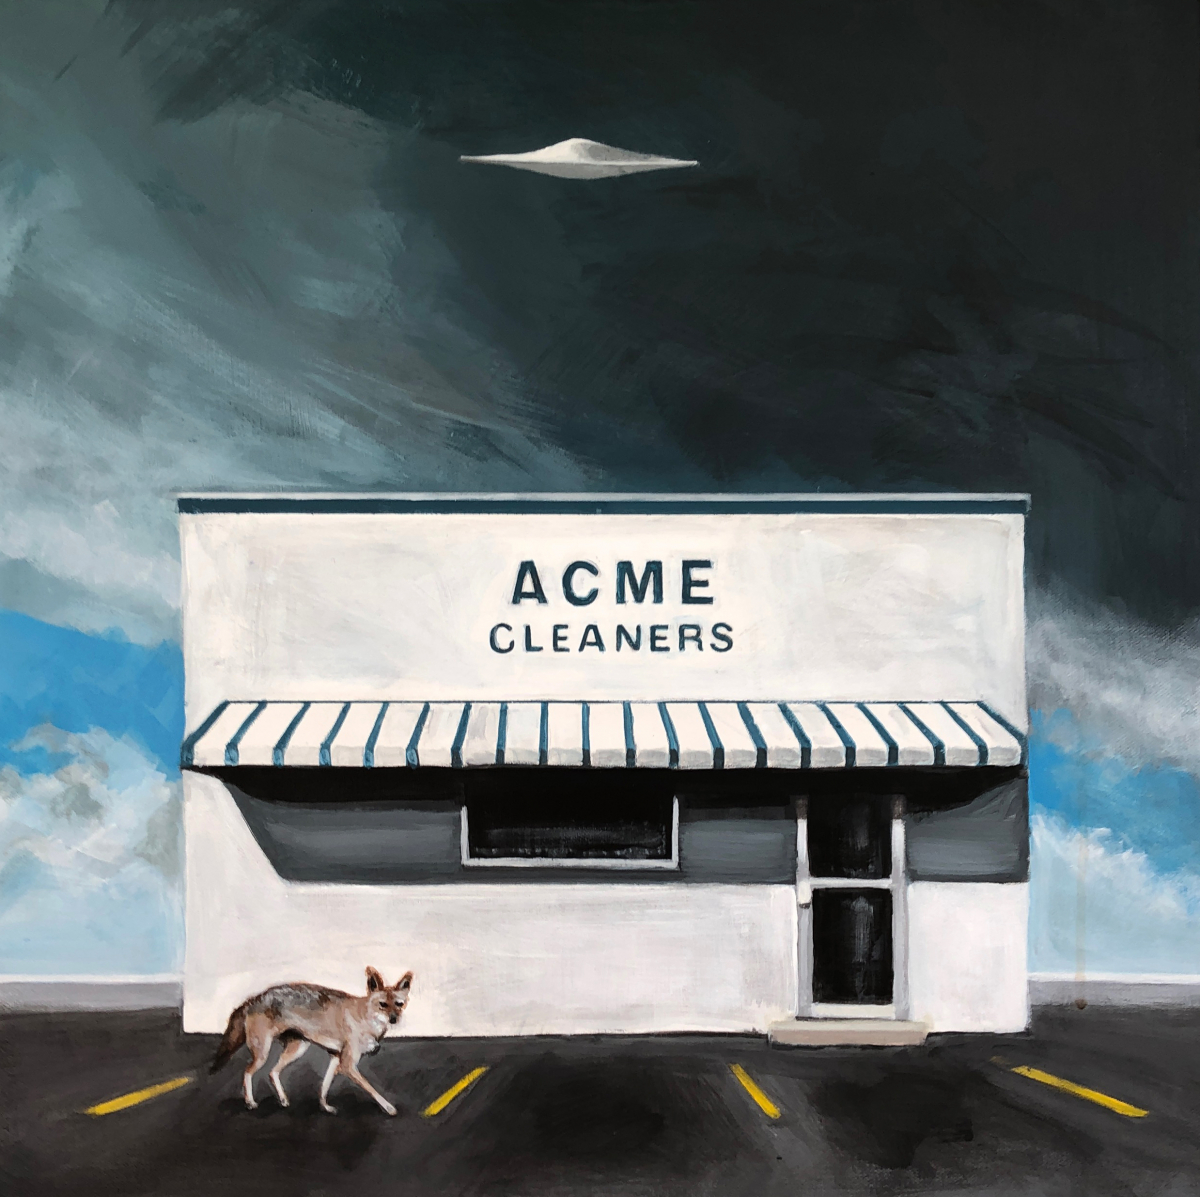 Acme Cleaners, 2019